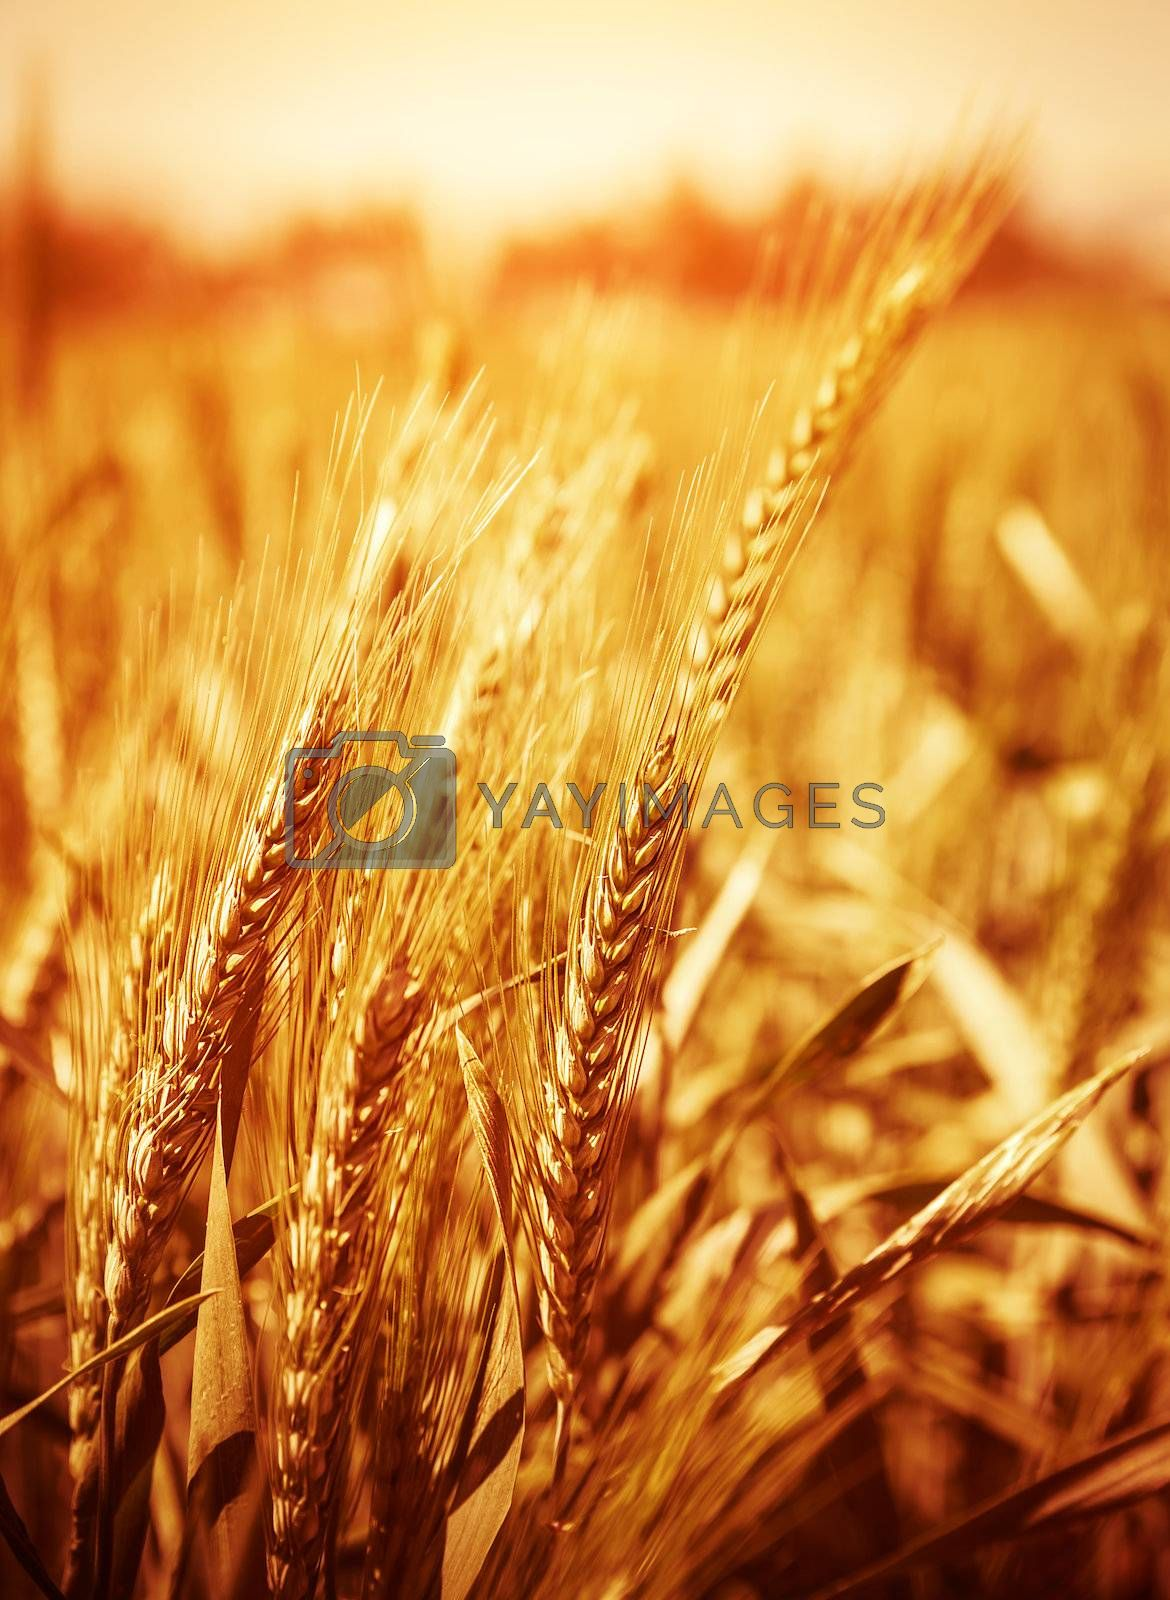 Yellow wheat field background, warn sunset light, soft focus, autumnal nature, bread production, farmland, dry rye stems, harvesting concept